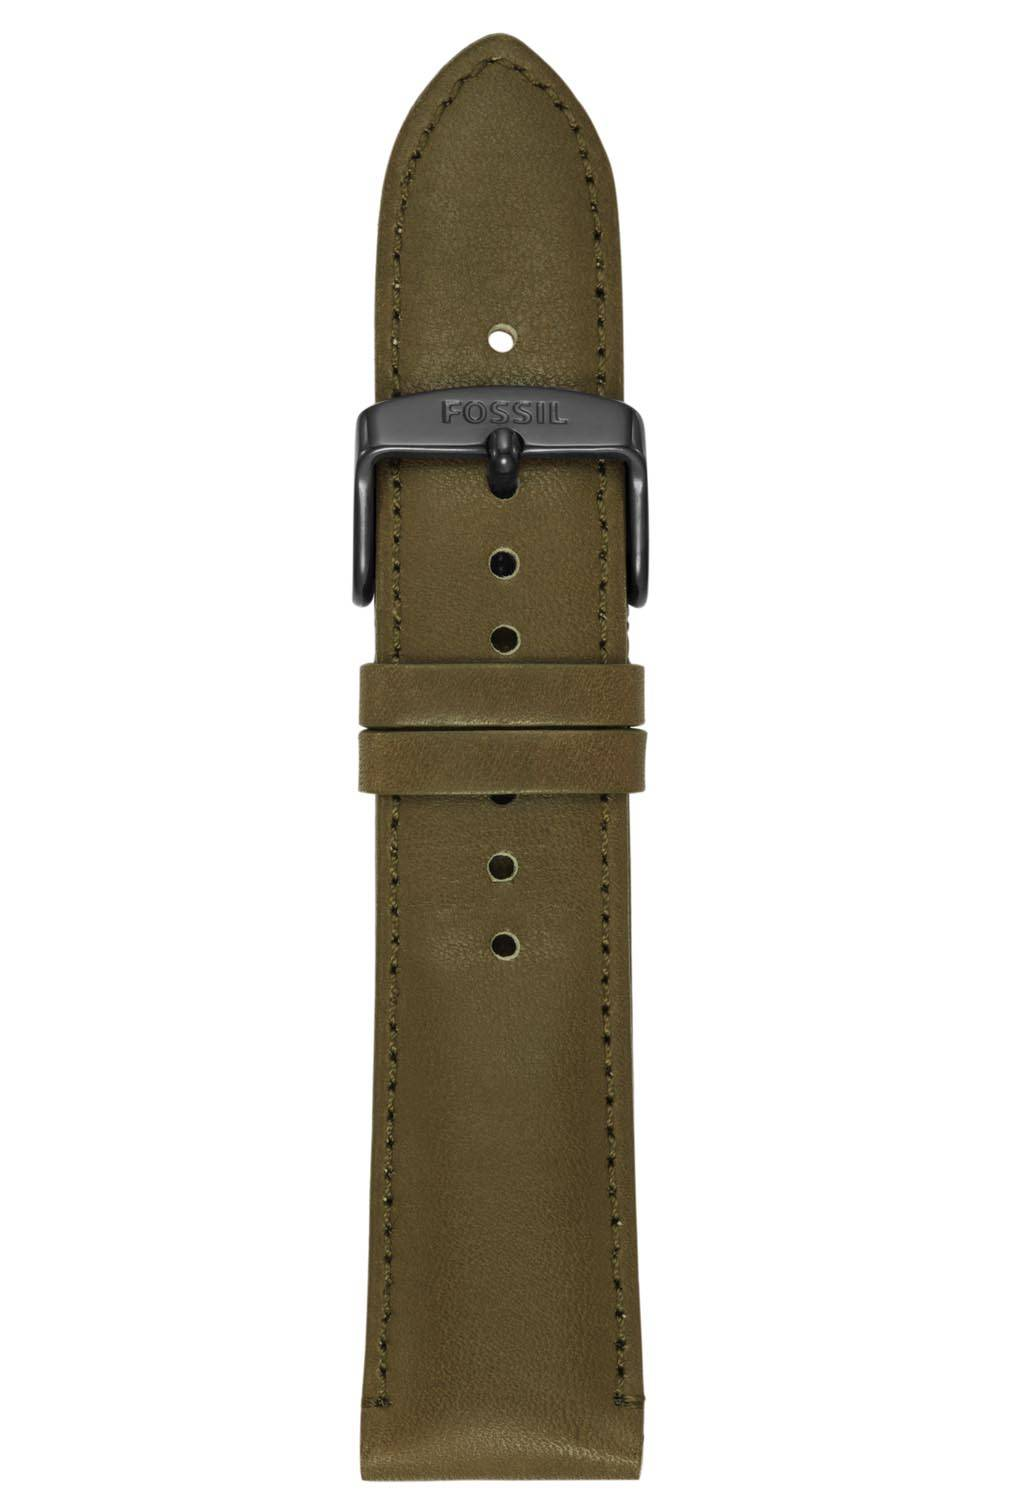 Fossil 22mm Green Leather Strap S221345